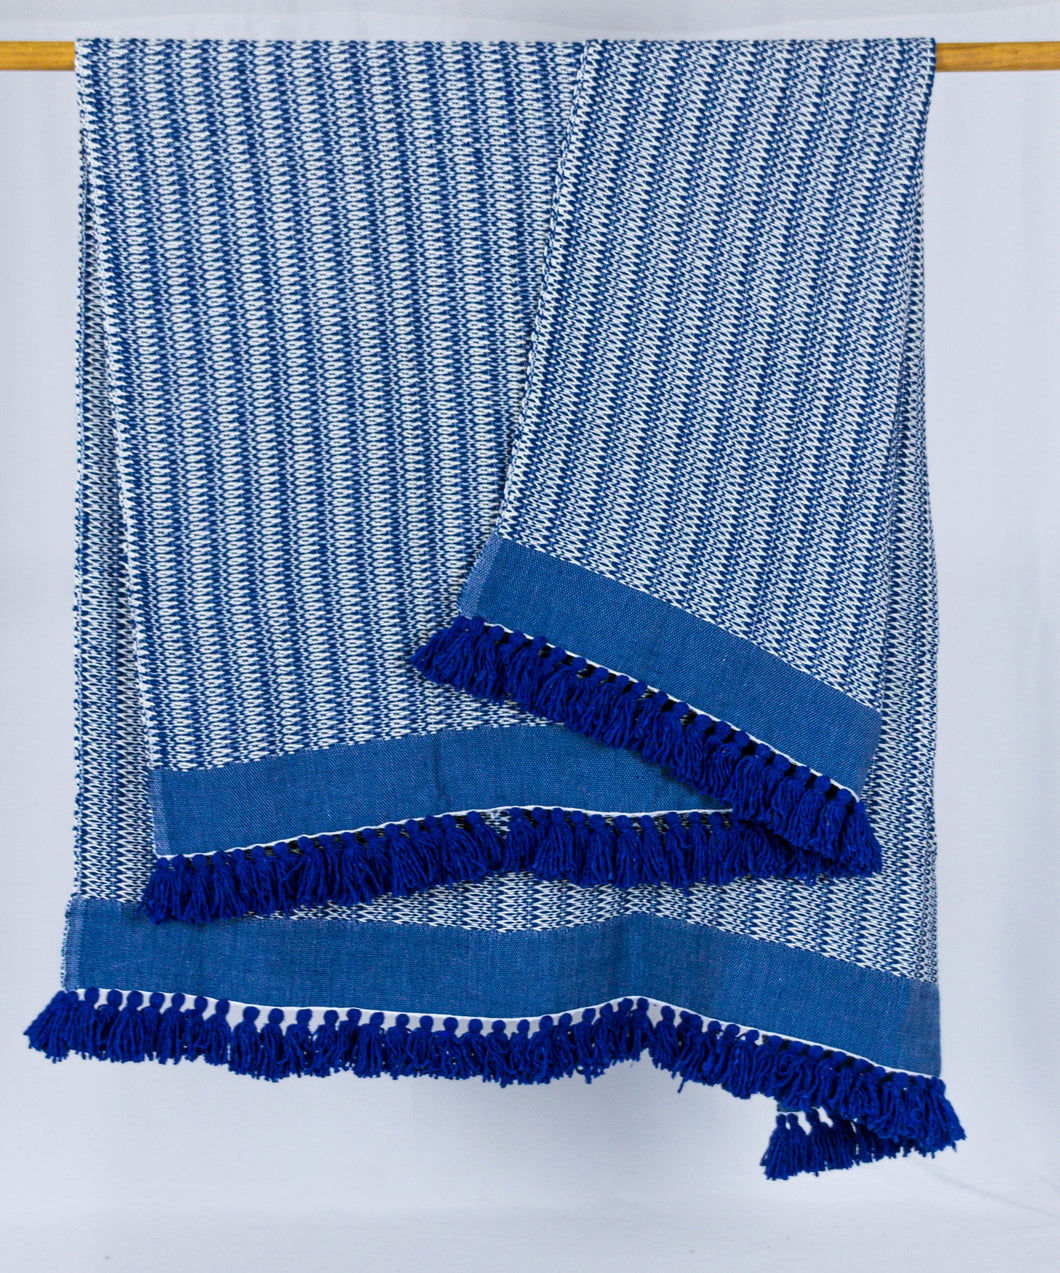 Wool Design Blanket: Blue and White with Blue Band and Blue Tassels